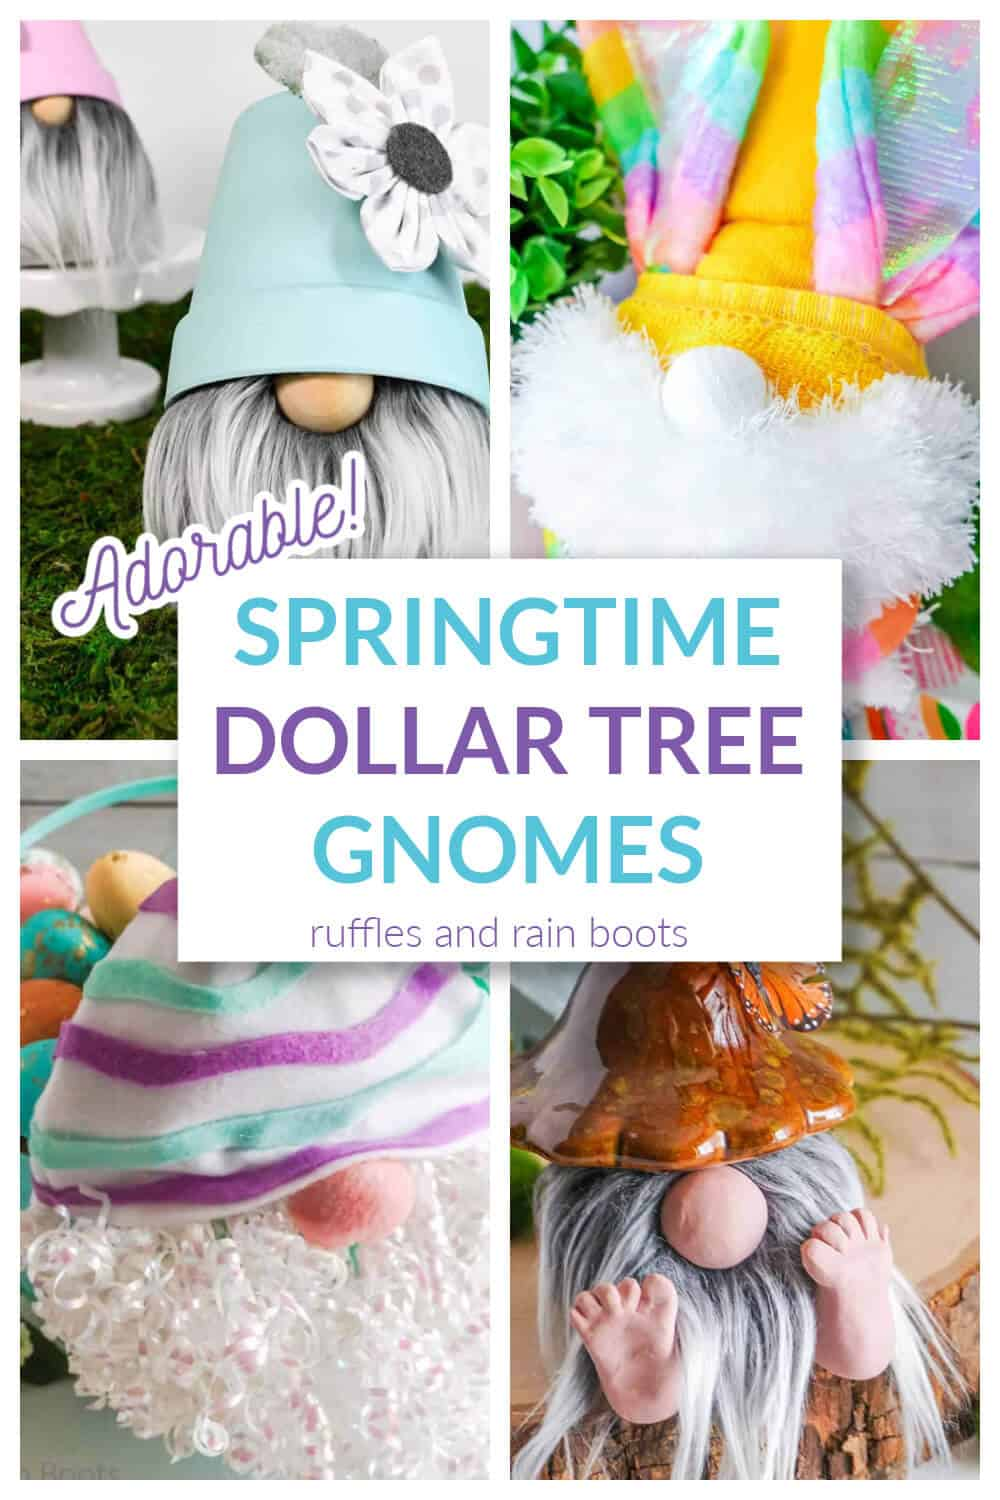 collage of 4 pastel colored gnomes for Spring made with dollar tree items